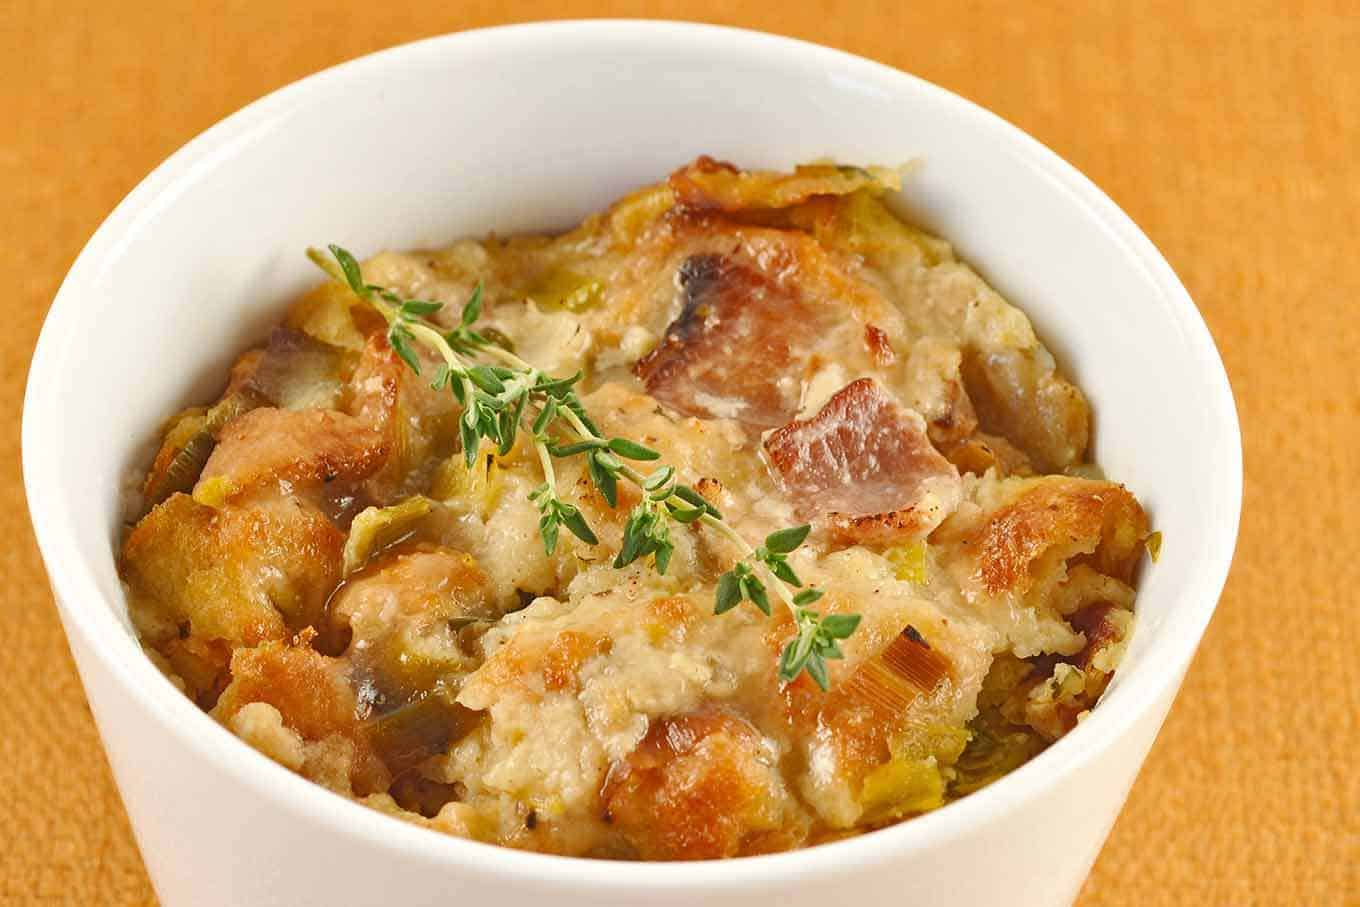 Savory Bacon, Leek and Thyme Bread Pudding